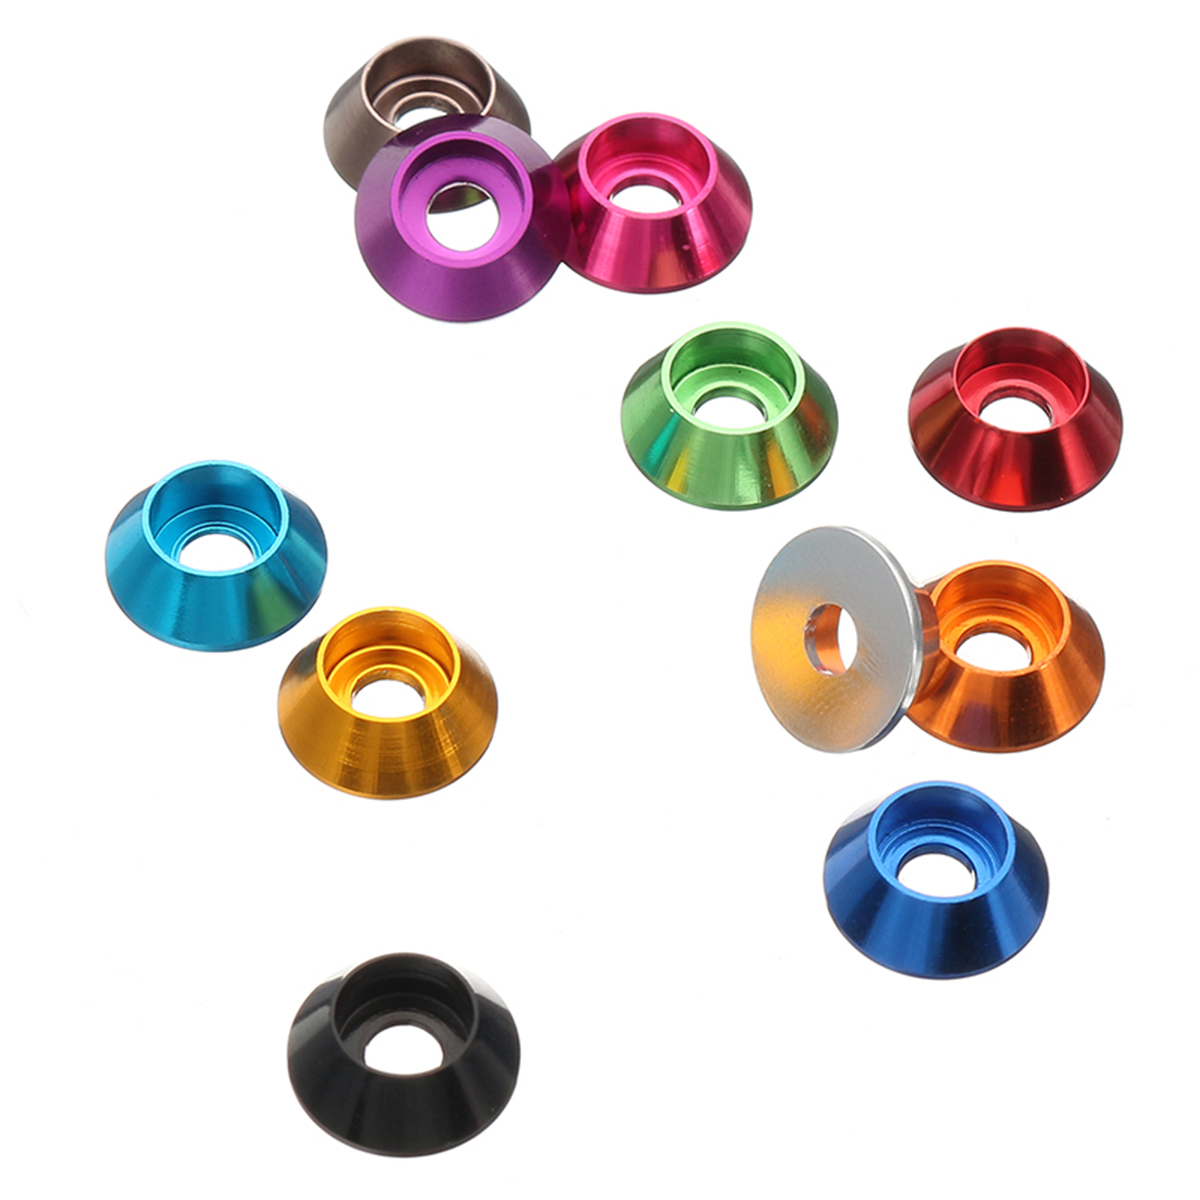 Cup Head Hex Screw Gasket Washer Nuts Aluminum Alloy M2 M2.5 M3 M4 Multicolor